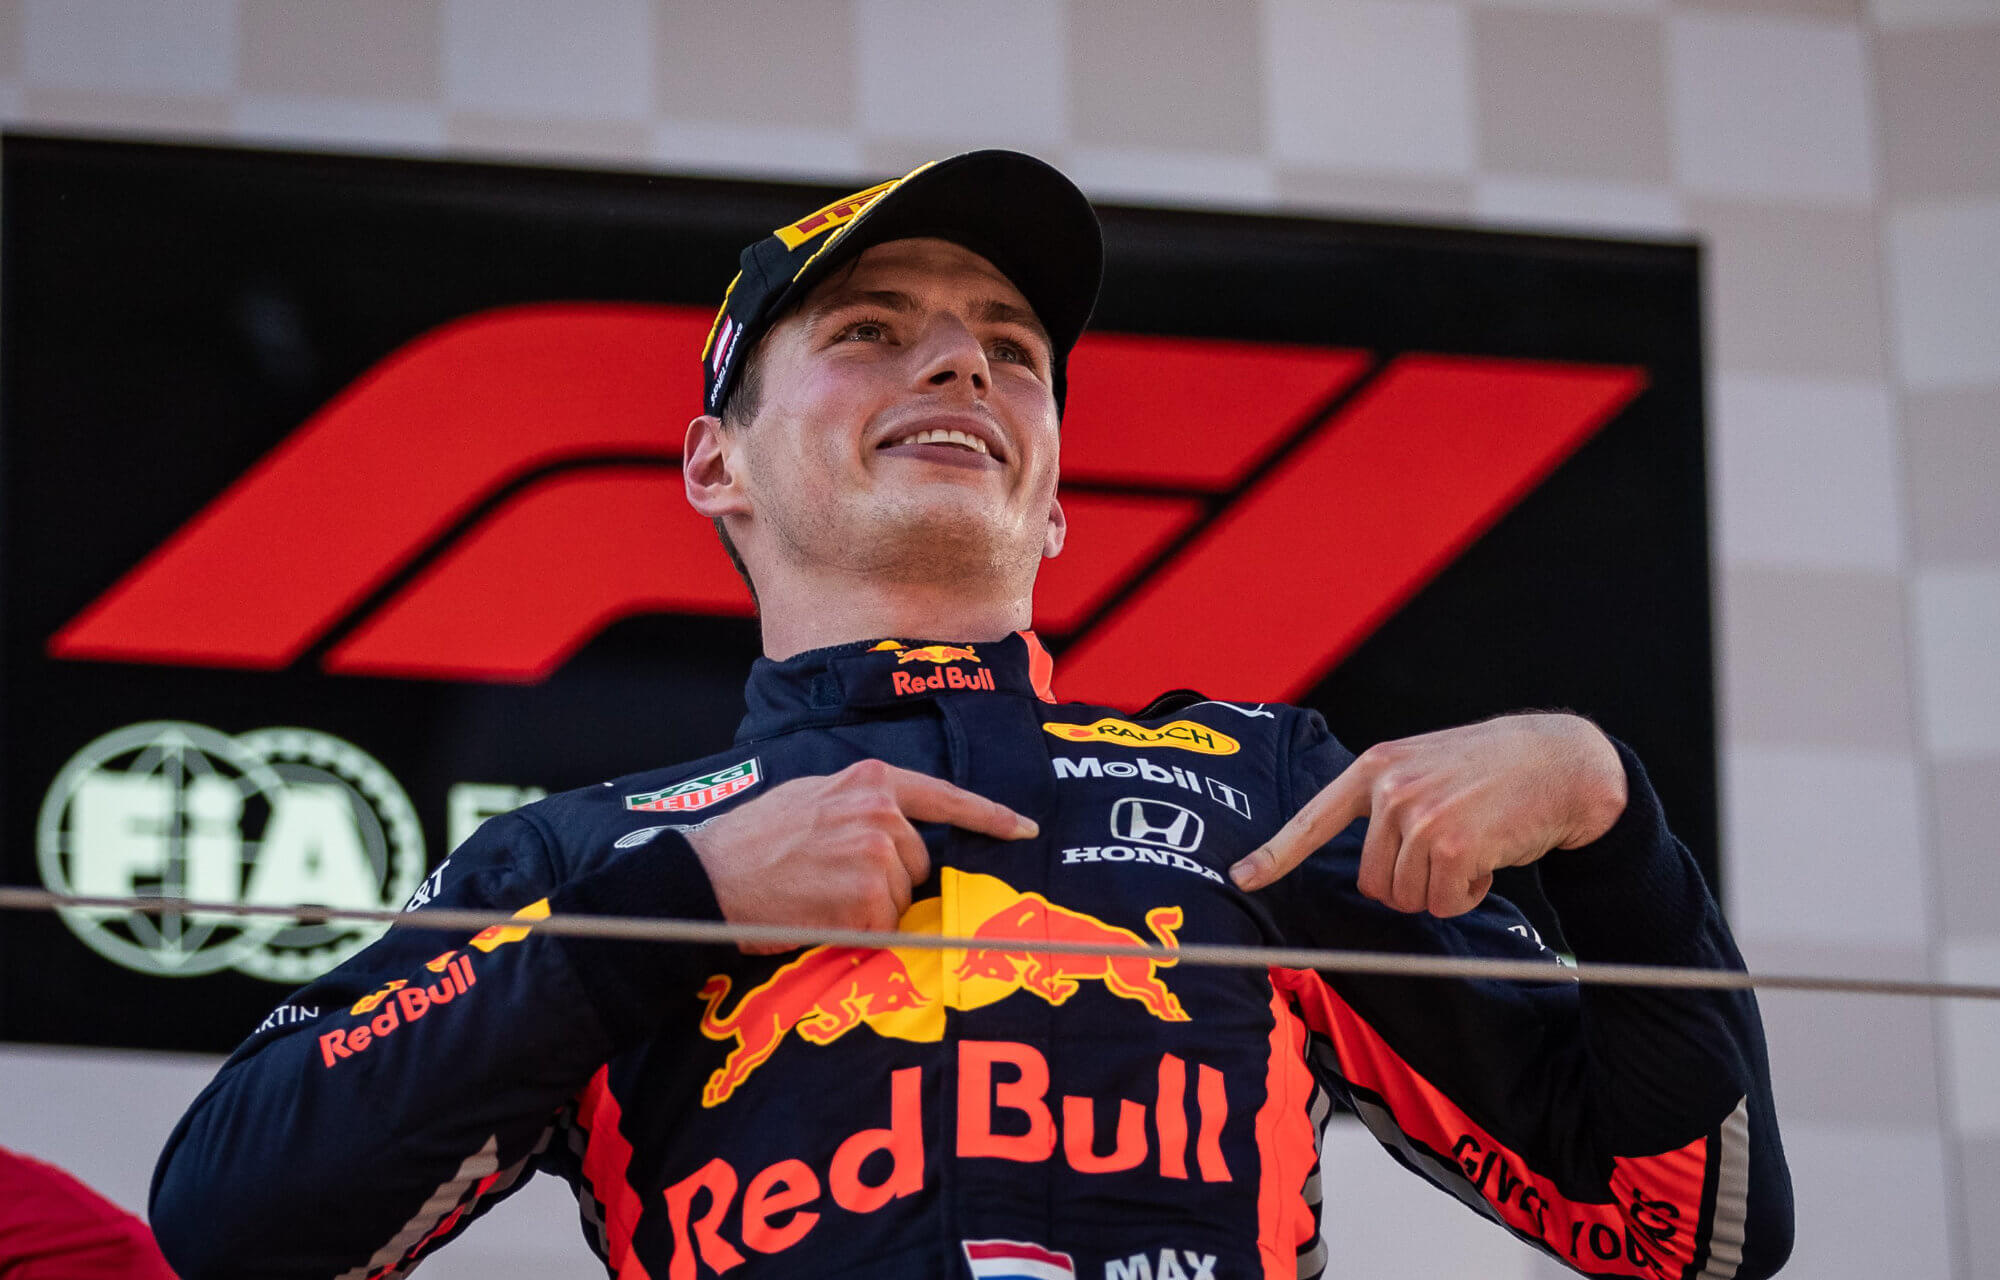 Momentous day for Honda as Max Verstappen takes victory in Austria